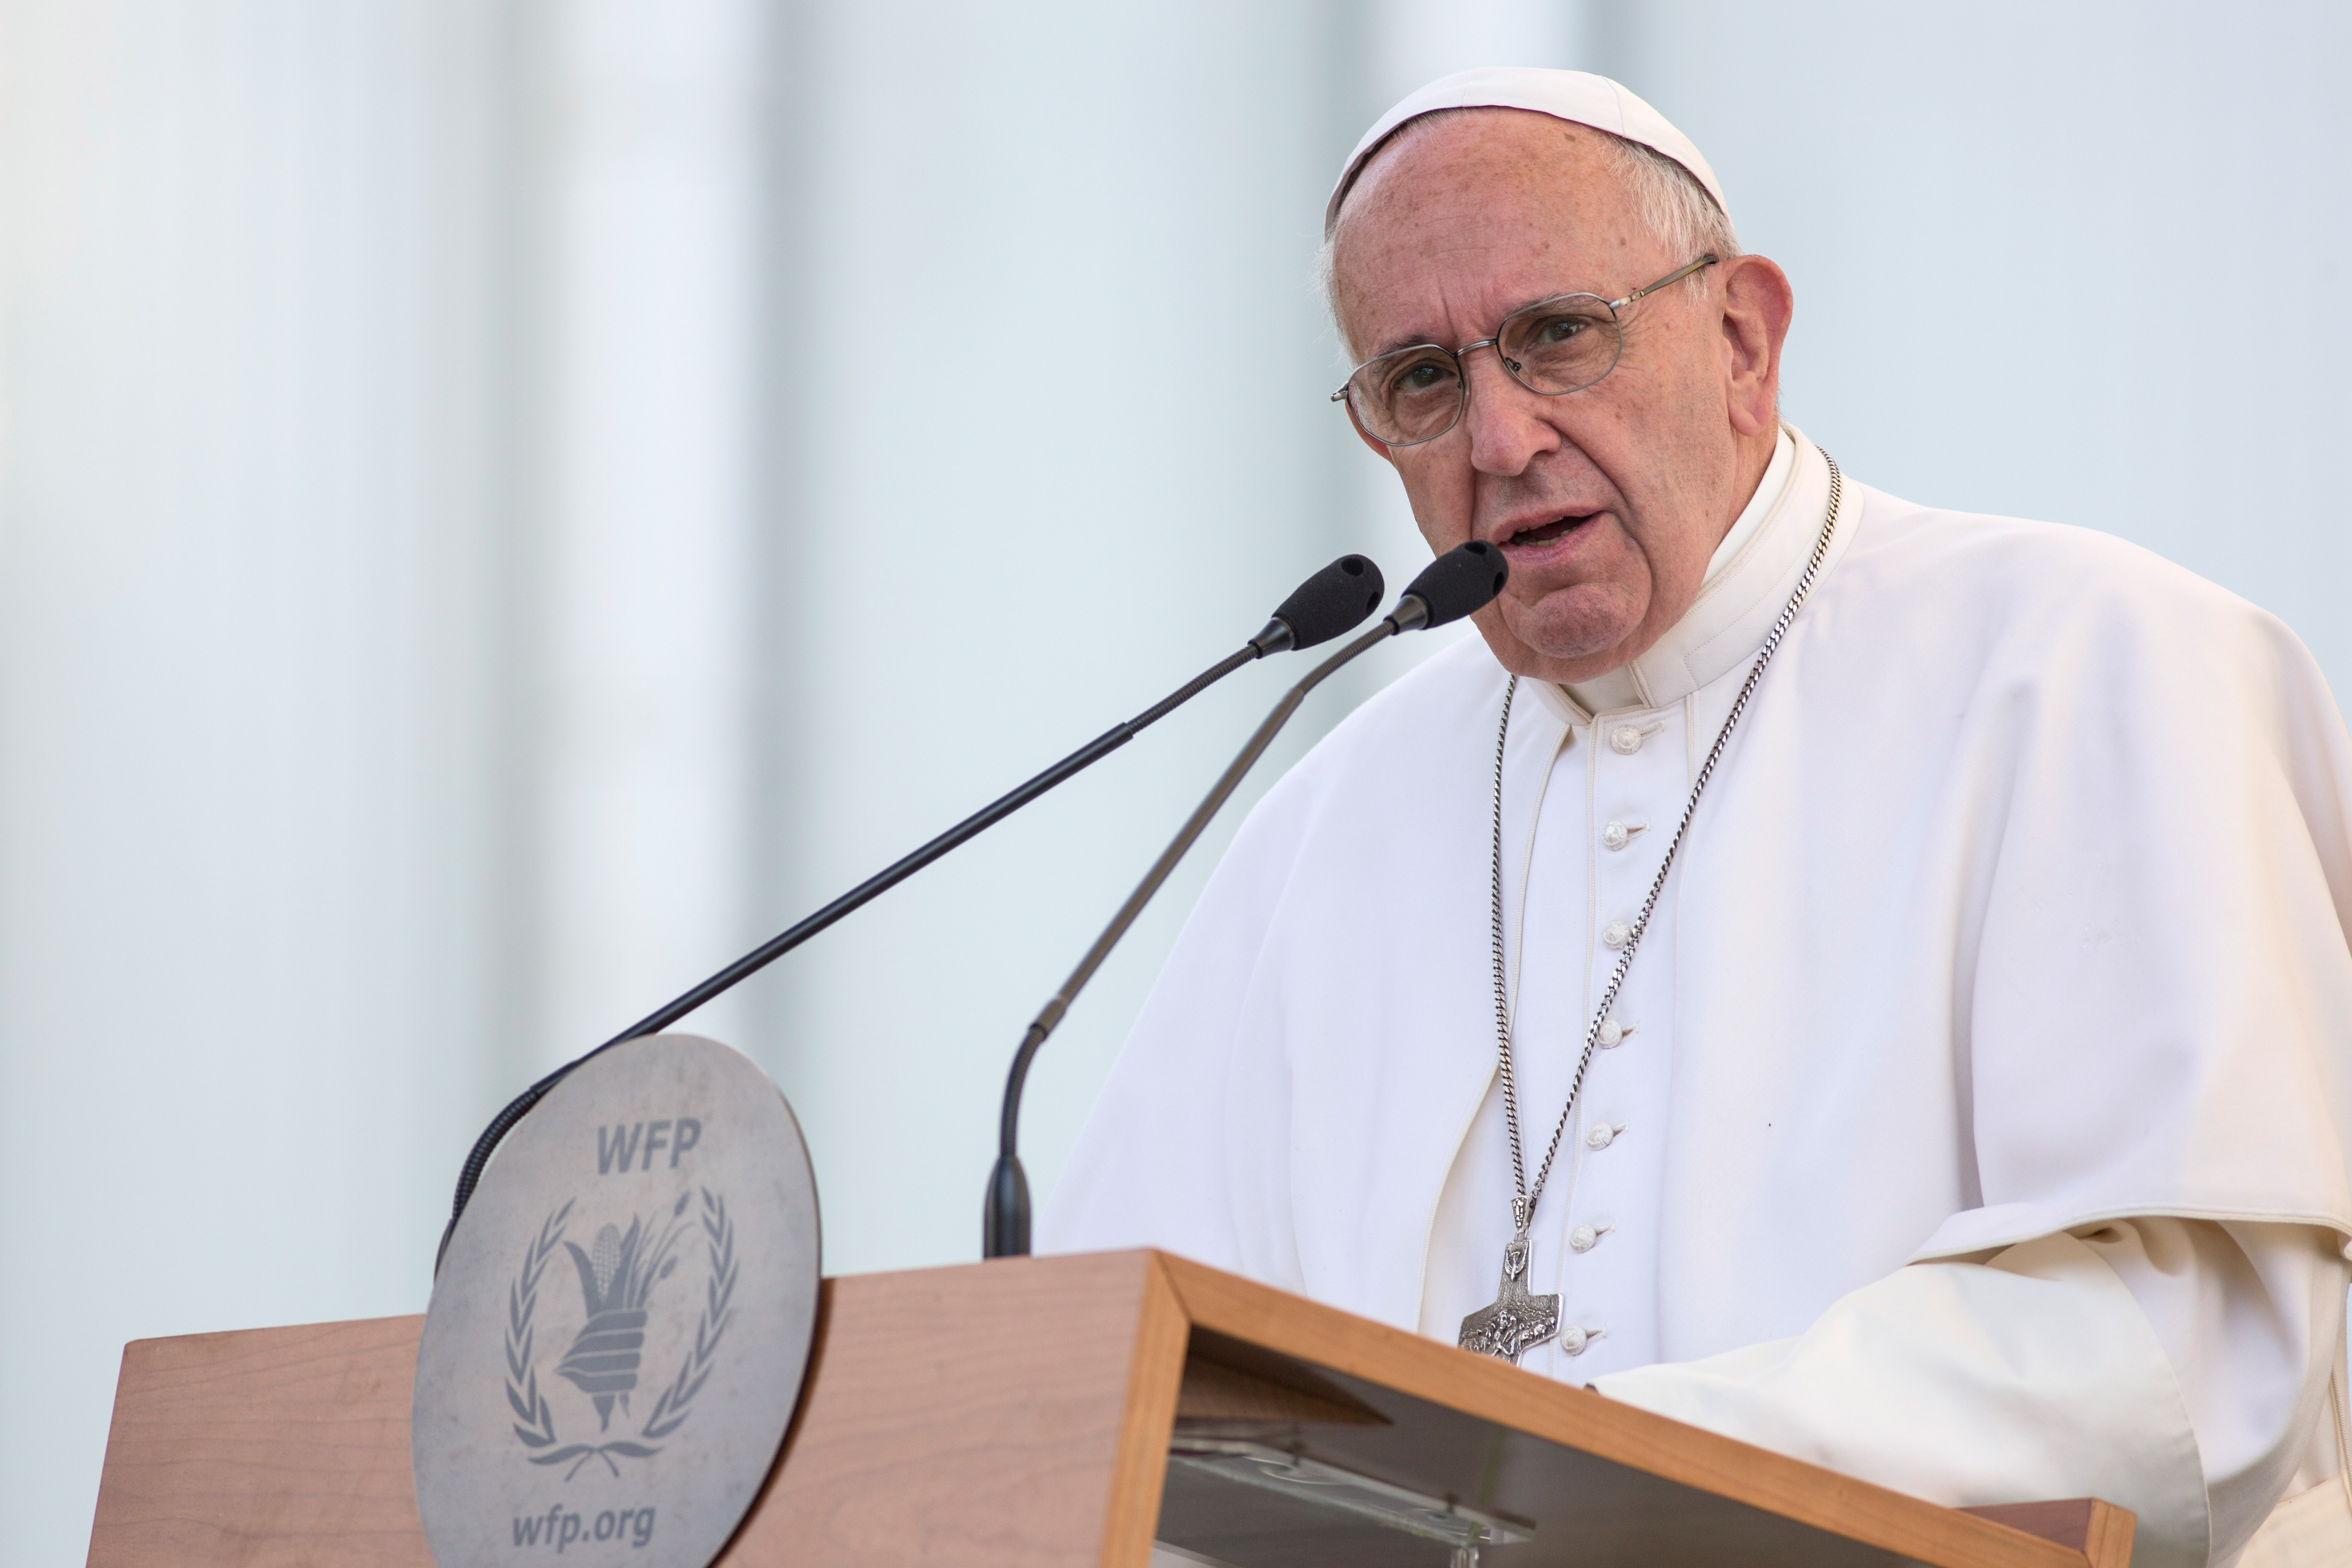 Pope Francis delivers his speech at the The United Nations World Food Programme headquarter on June 13, 2016 in Rome, Italy.